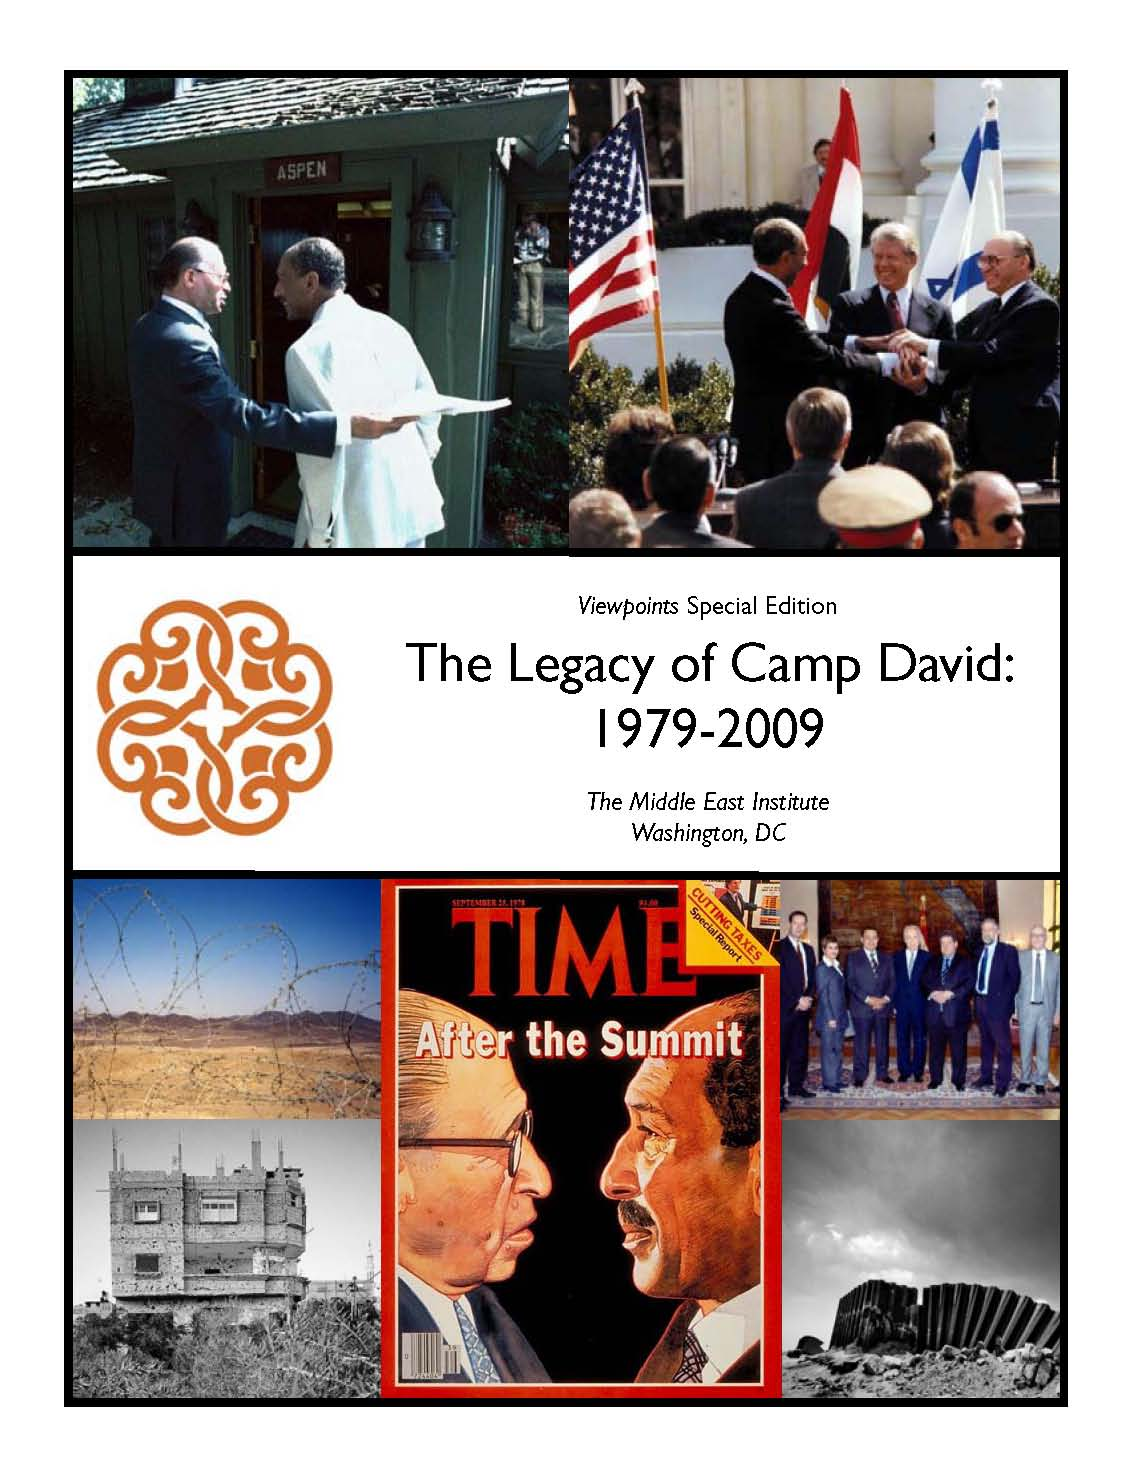 Introduction to The Legacy of Camp David: 1979-2009